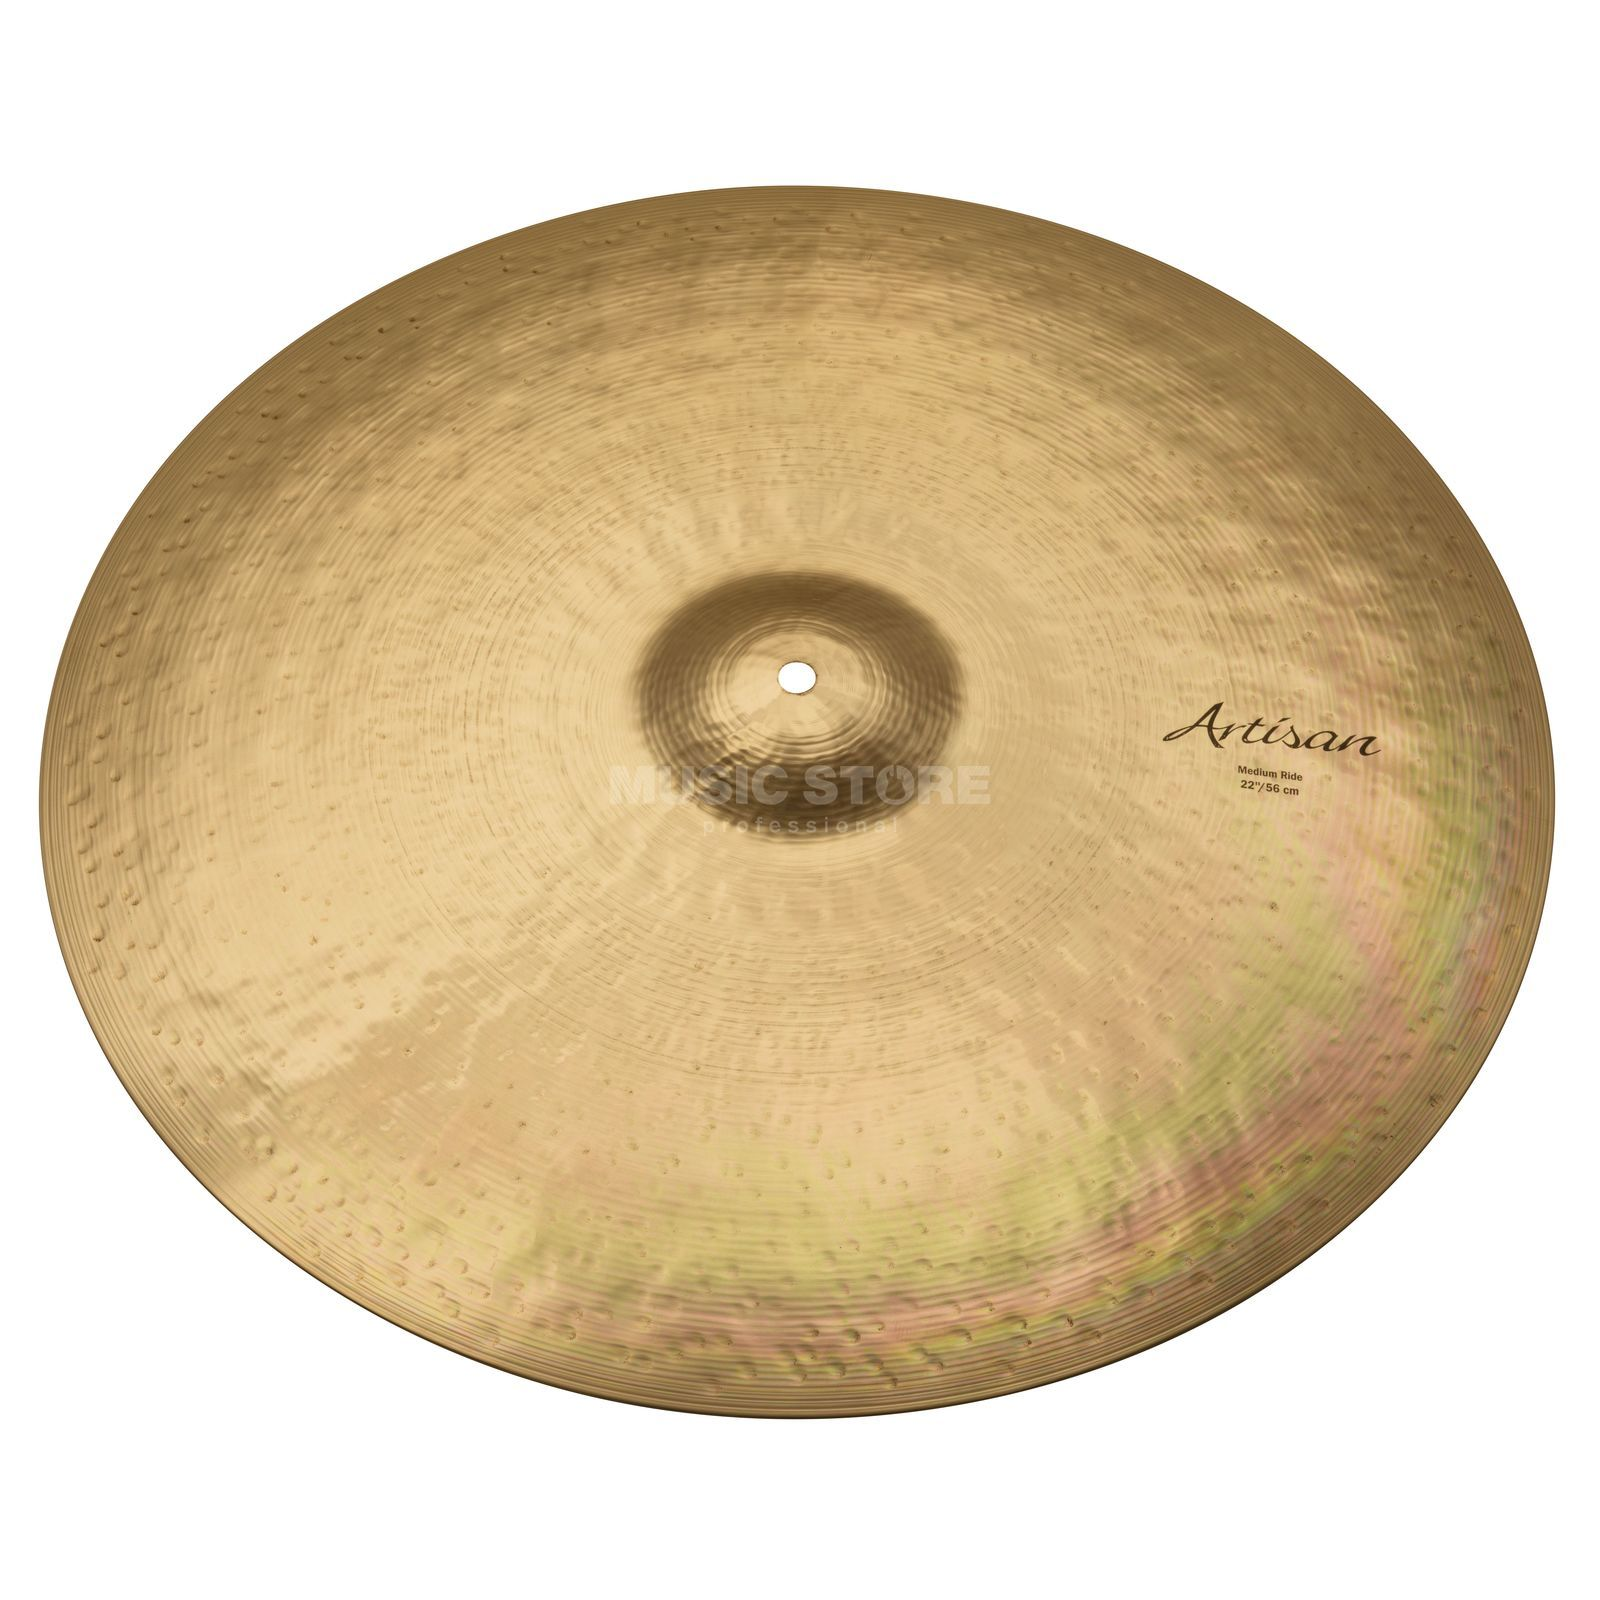 "Sabian Artisan Medium Ride 22"", Brilliant Finish Produktbillede"